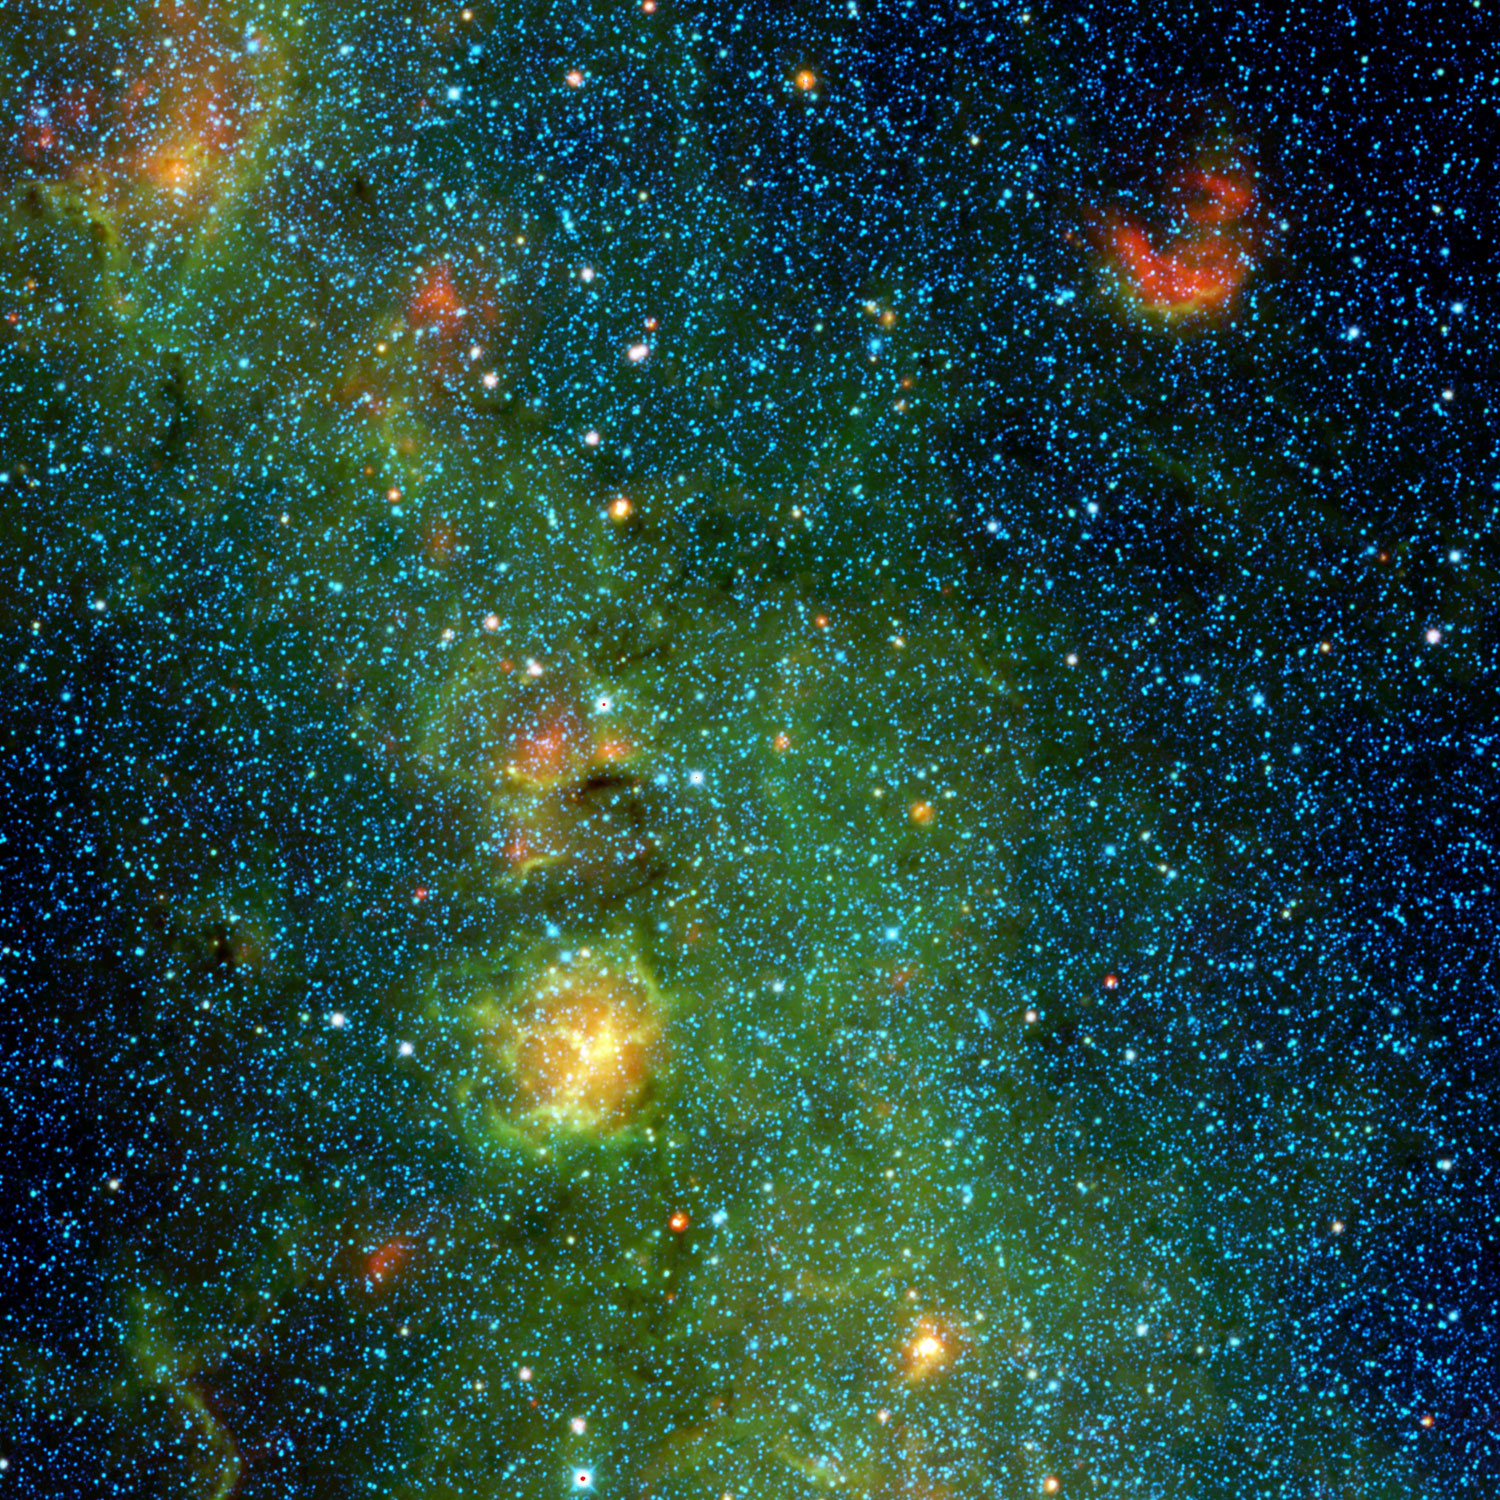 A storm of stars is brewing in the Trifid nebula, in this view from NASA's Wide-field Infrared Survey Explorer, or WISE, released on Jan. 29, 2014. The stellar nursery, where baby stars are bursting into being, is the yellow-and-orange object dominating the picture.